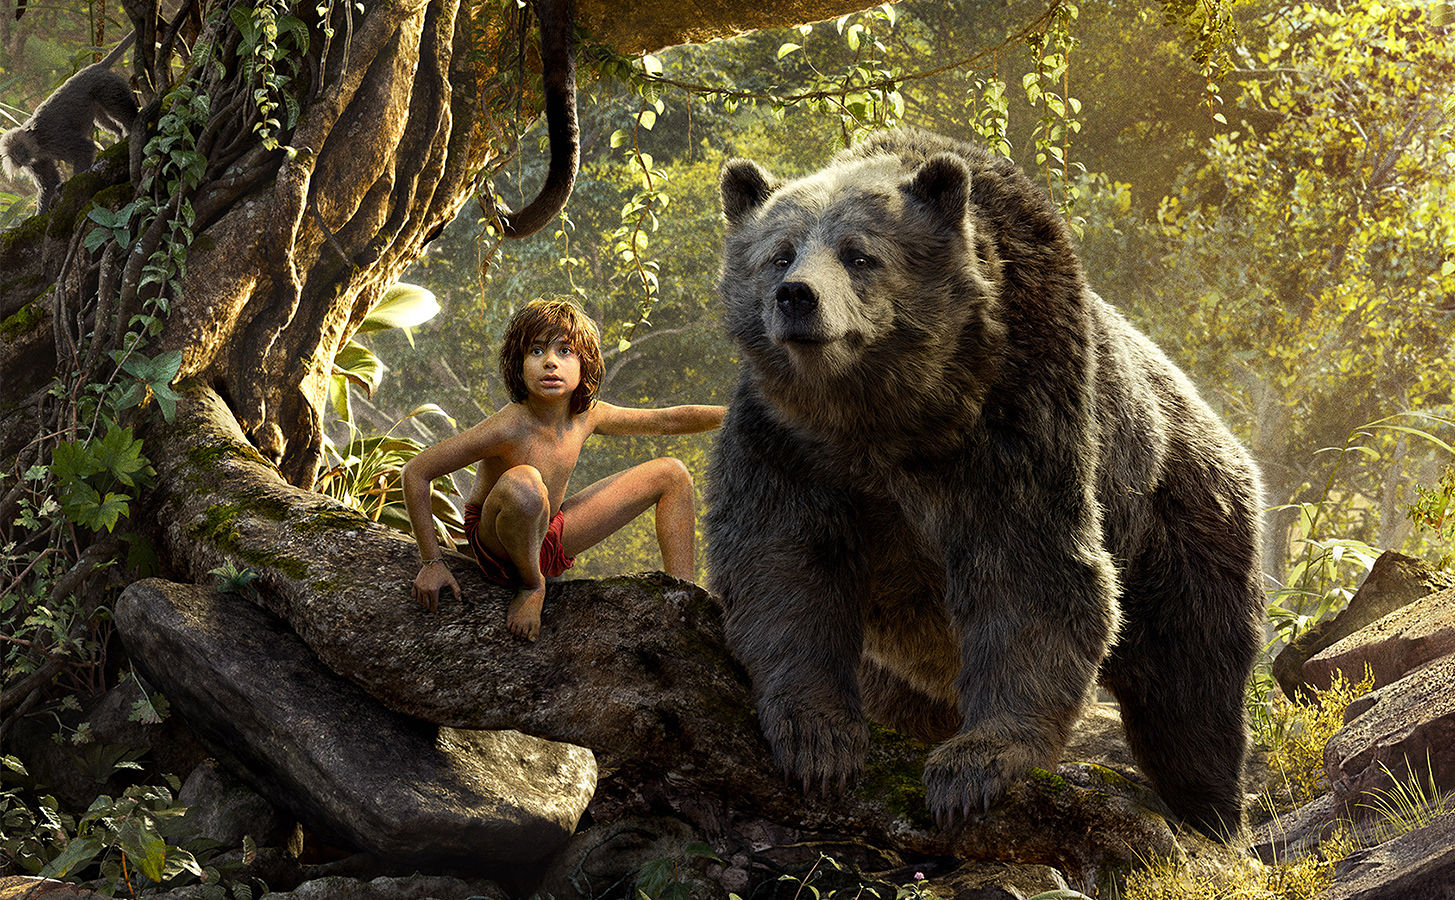 The Jungle Book - Mowgli and Baloo